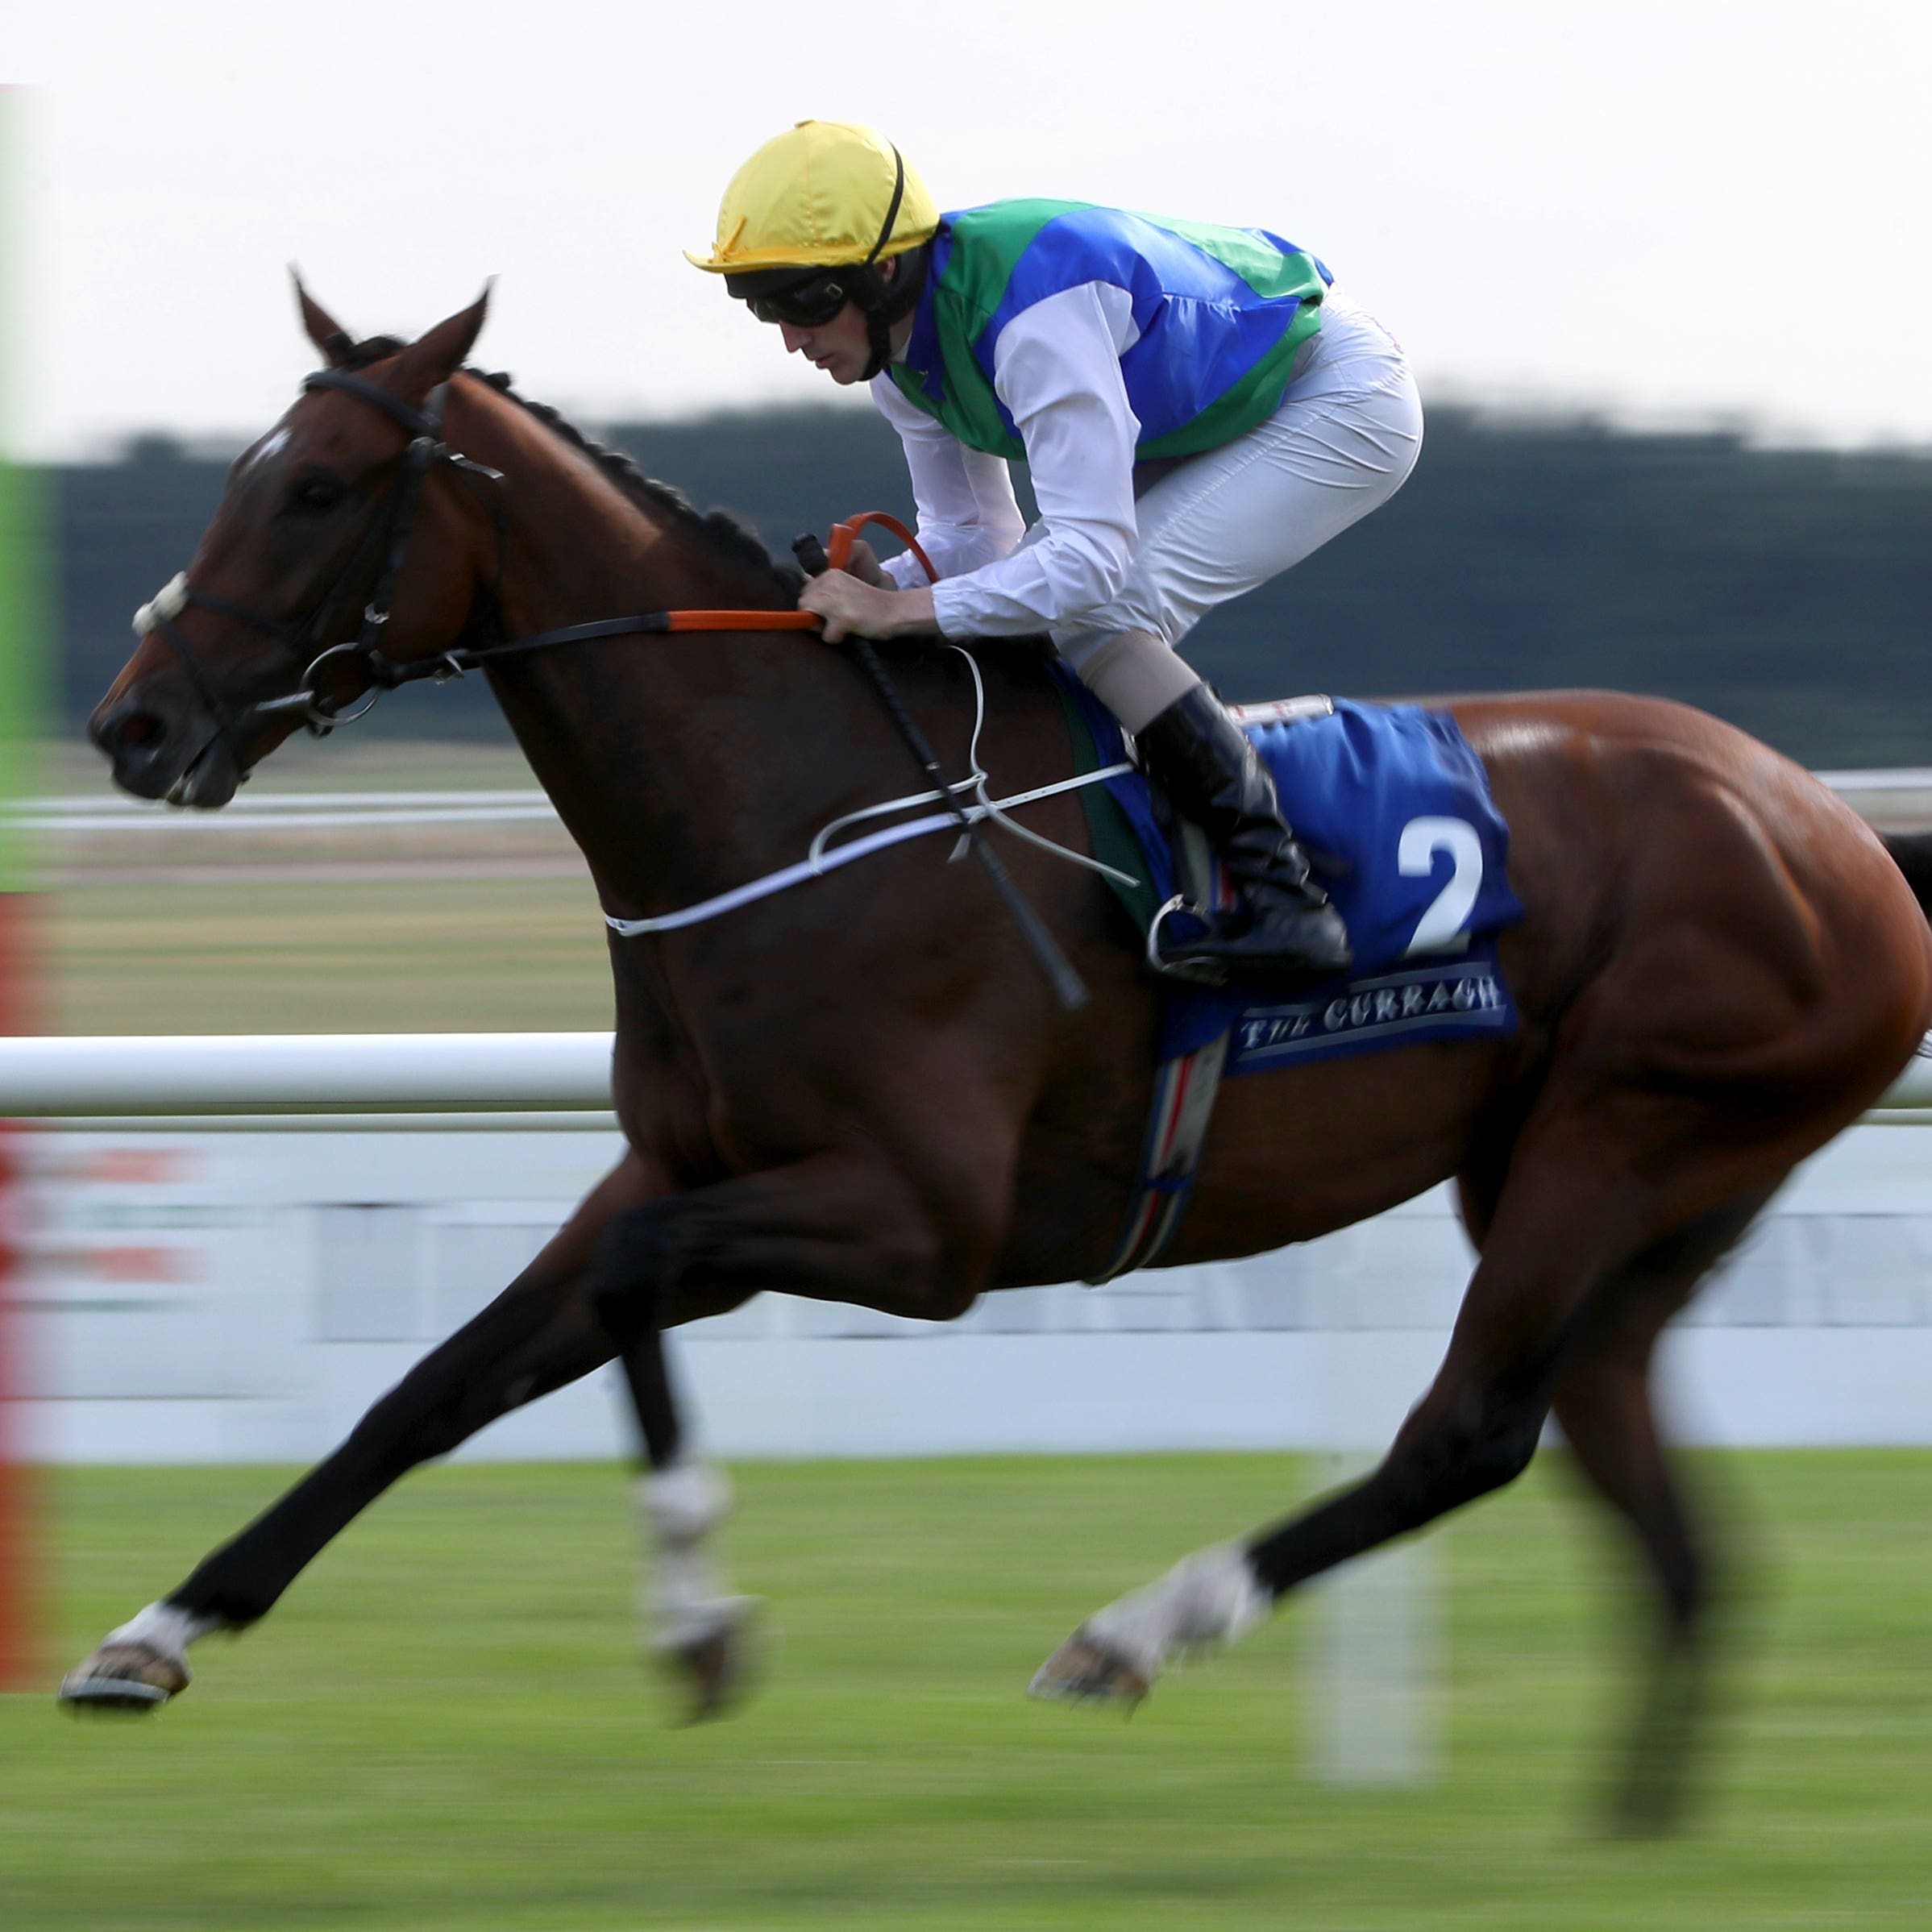 Maths Prize on his way to winning at the Curragh last month